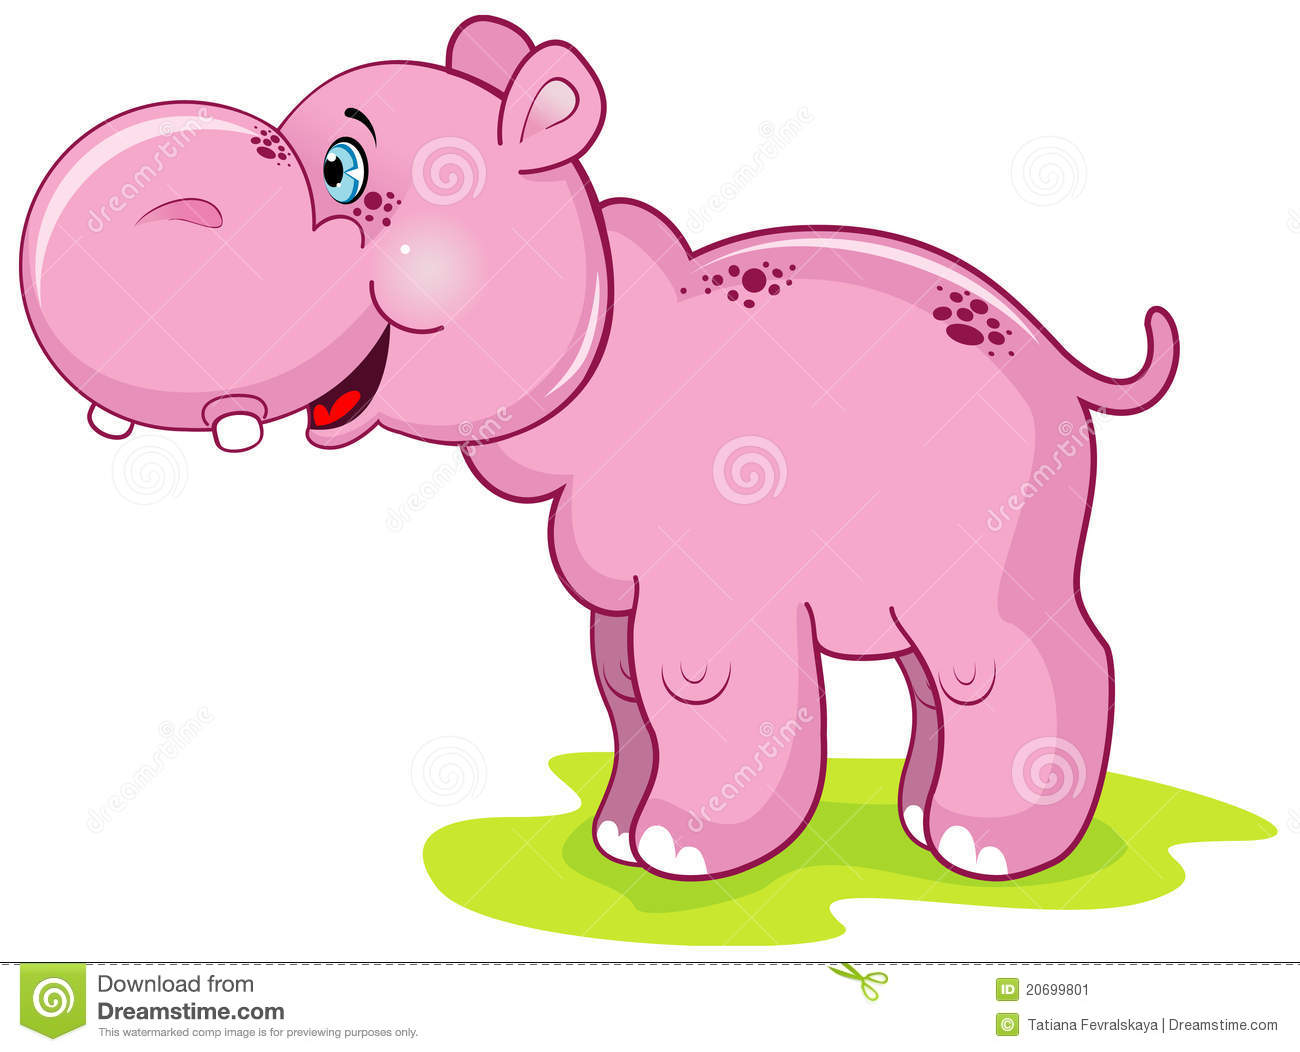 Cute pink hippo stock vector. Illustration of animal ...